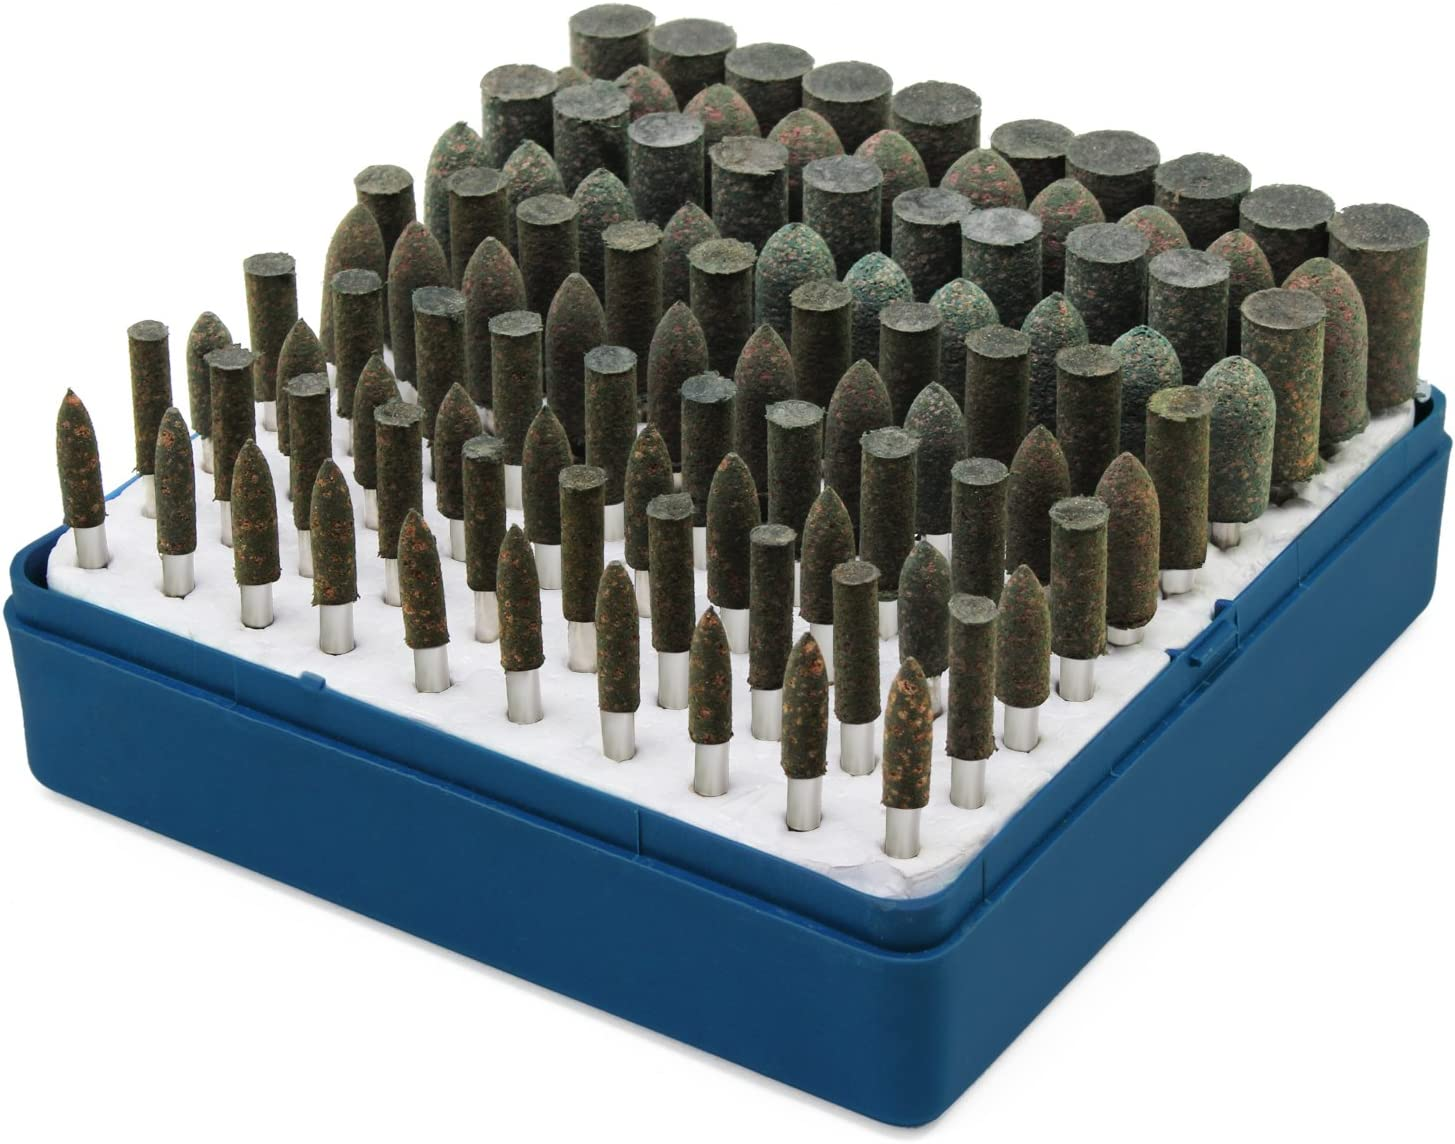 100PCS 3mm Shank 4mm Cylinder Head Grinding Bit Polisher Mounted Point